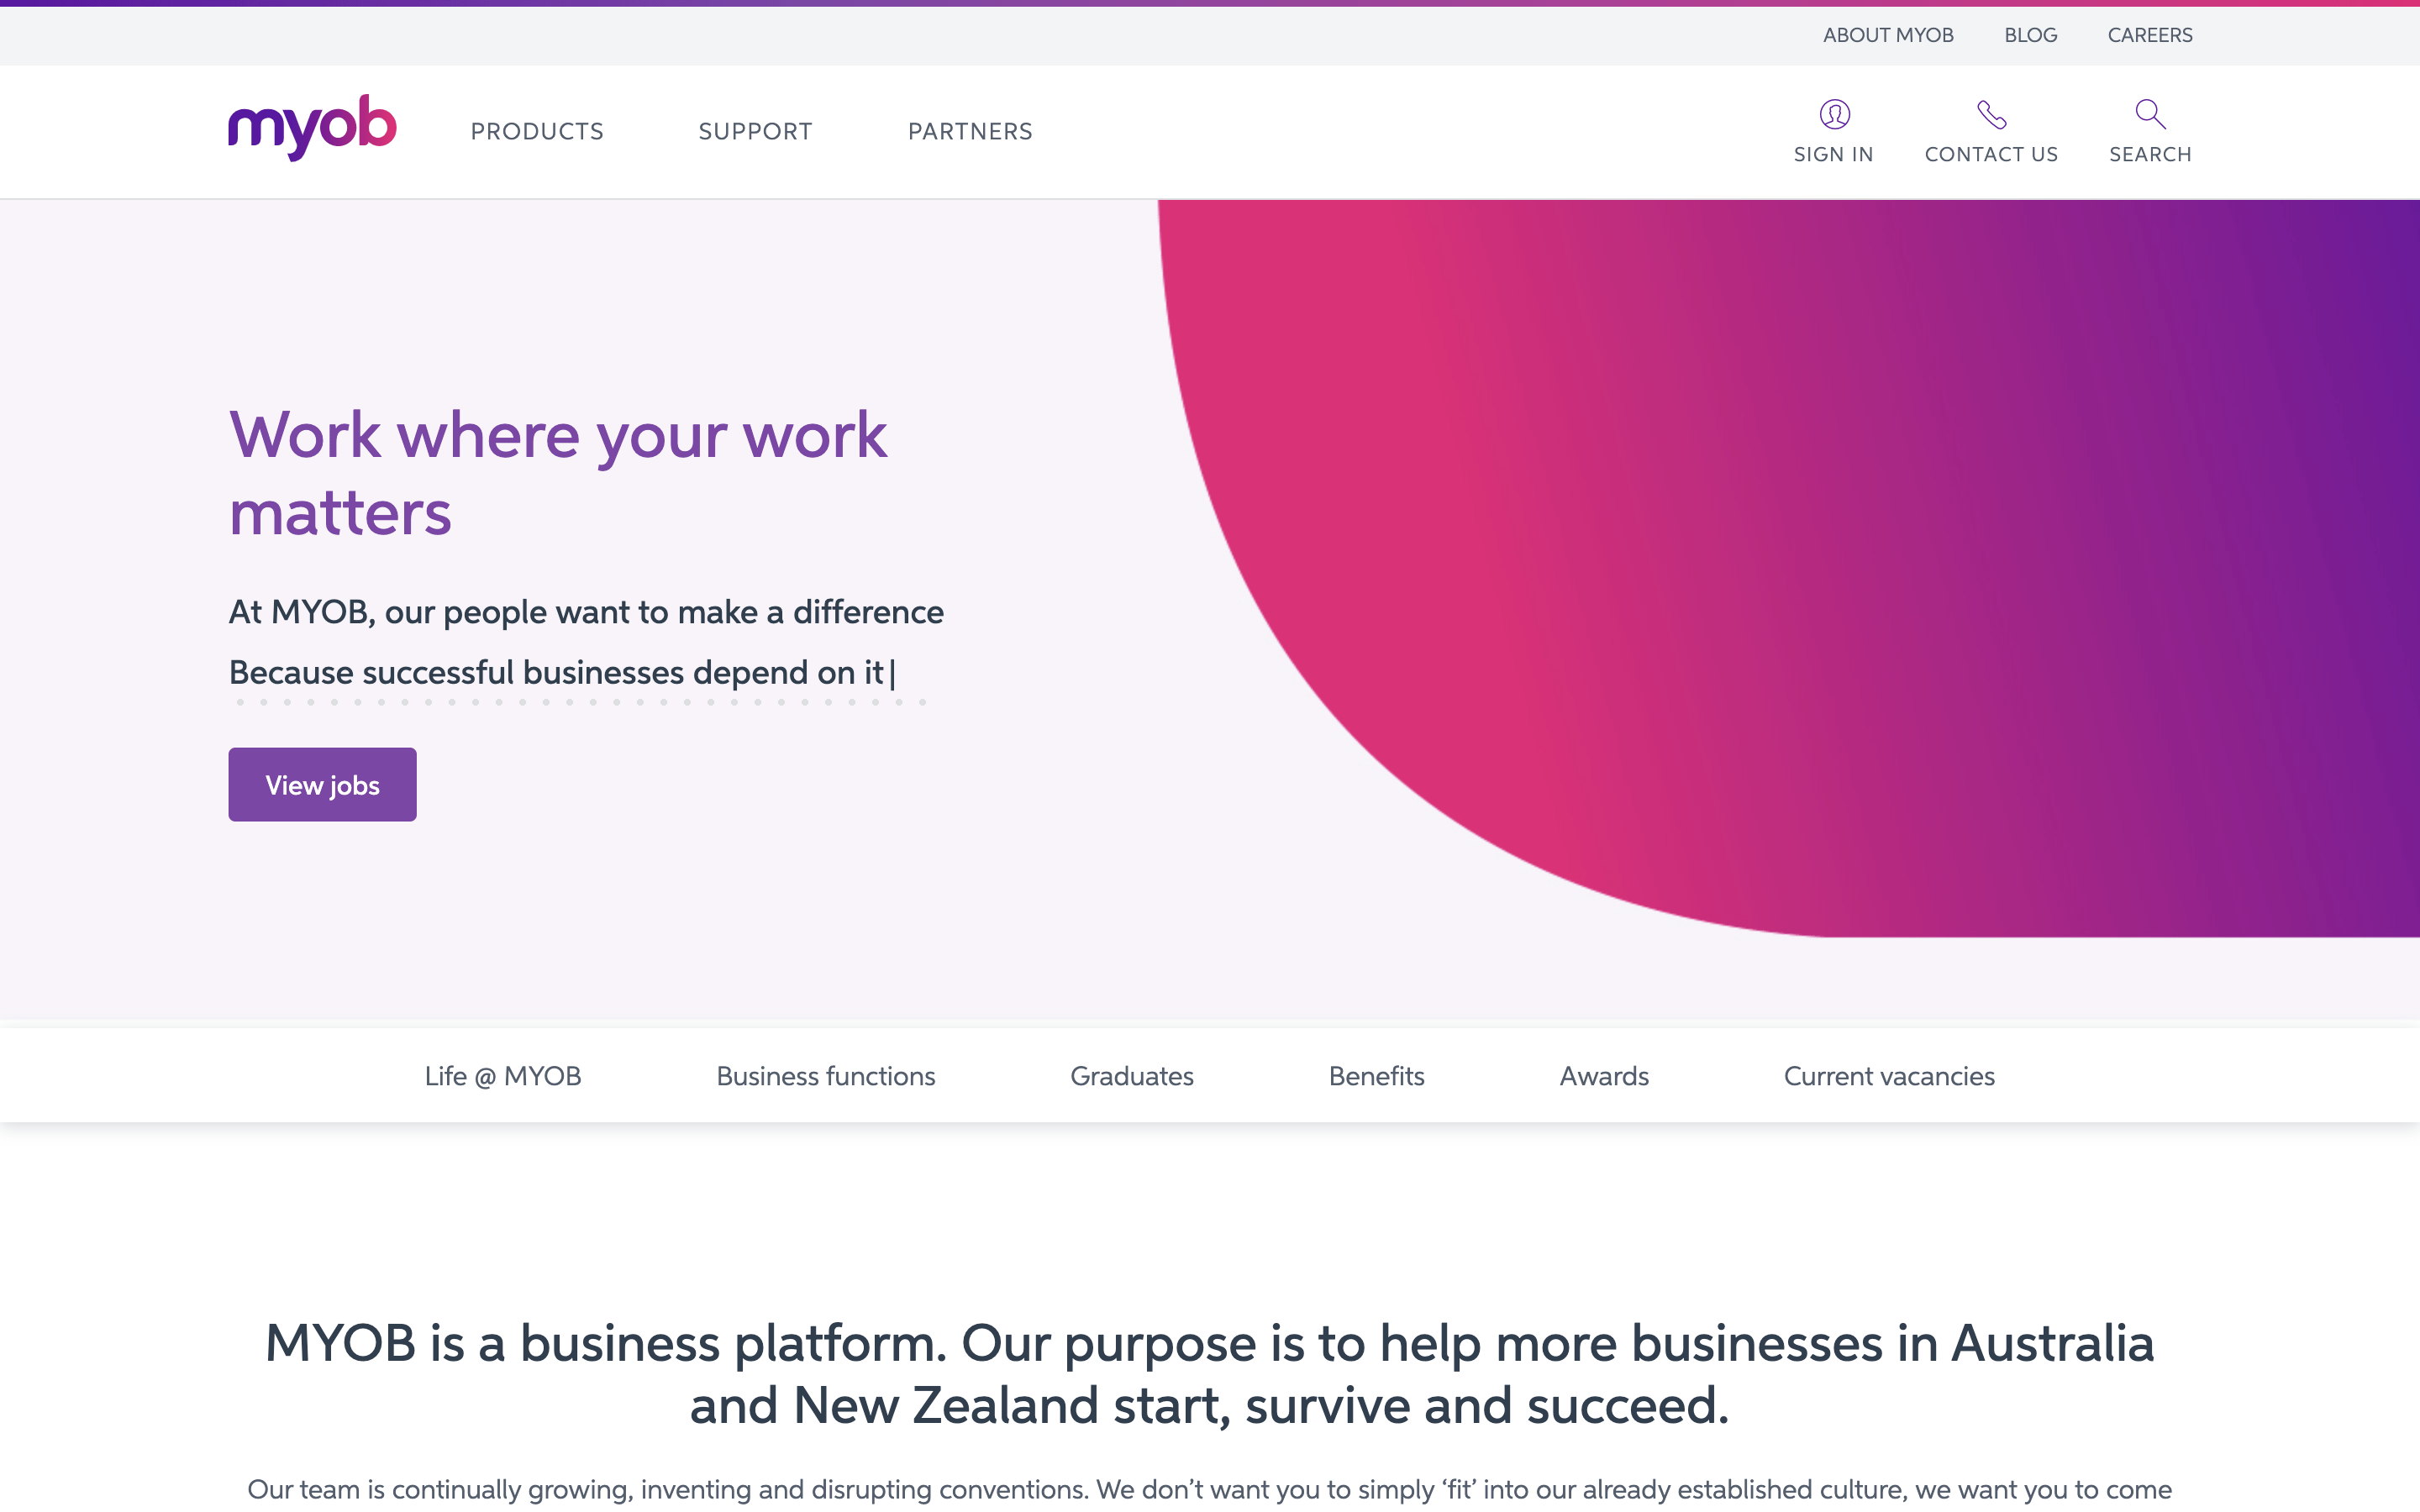 MYOB Careers Page 2021-01 Preview